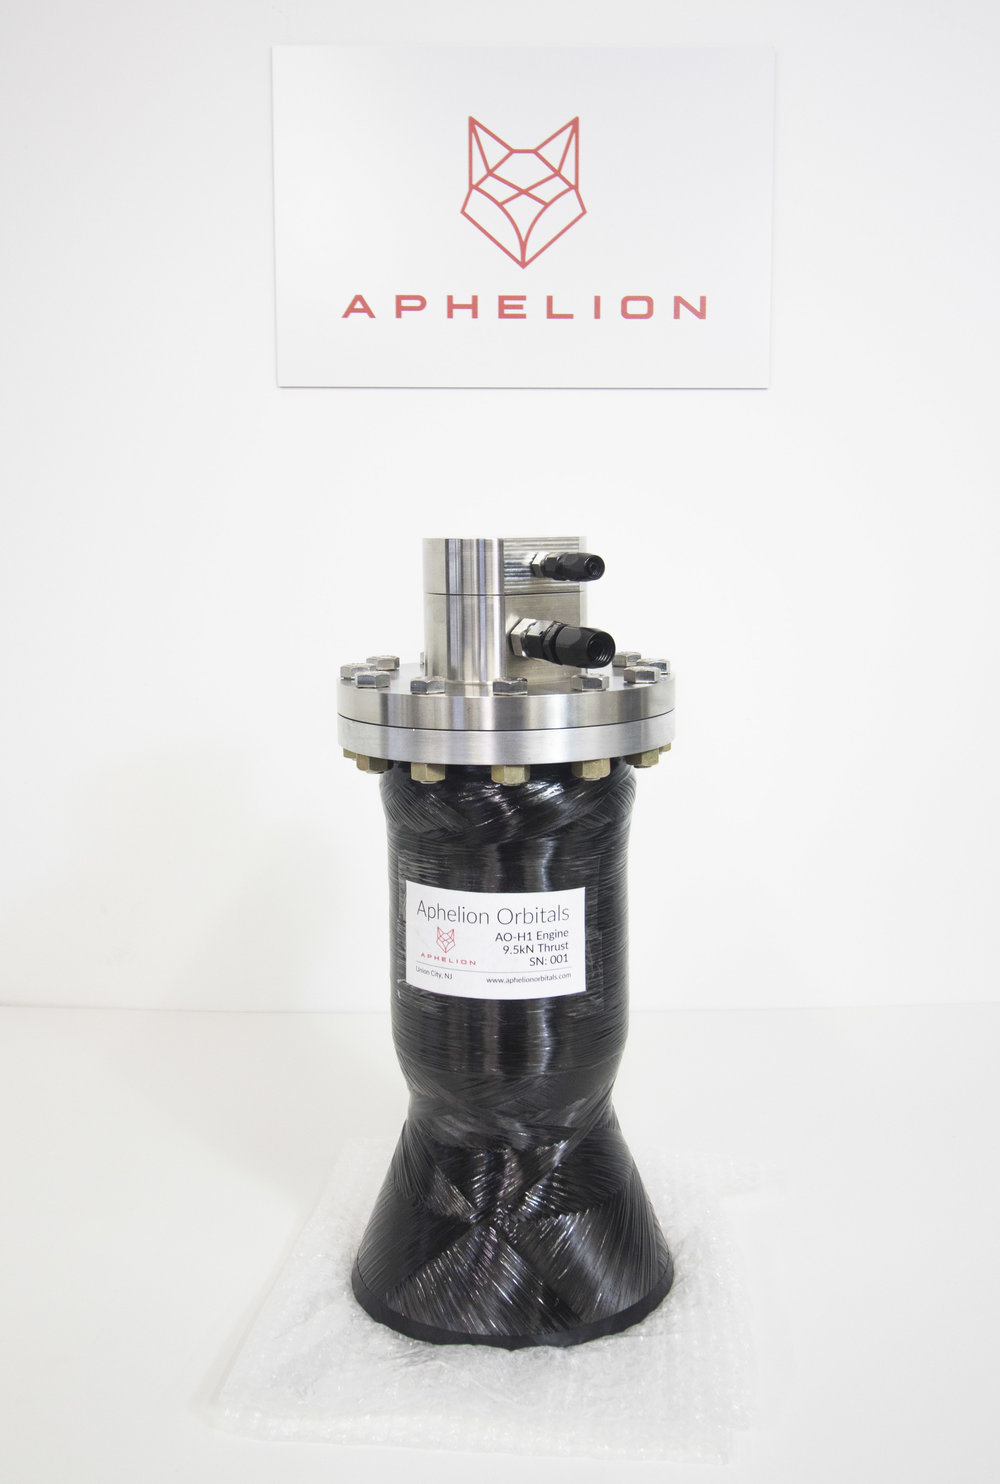 Aphelion Orbitals AO-H1 Traiblazer rocket engine